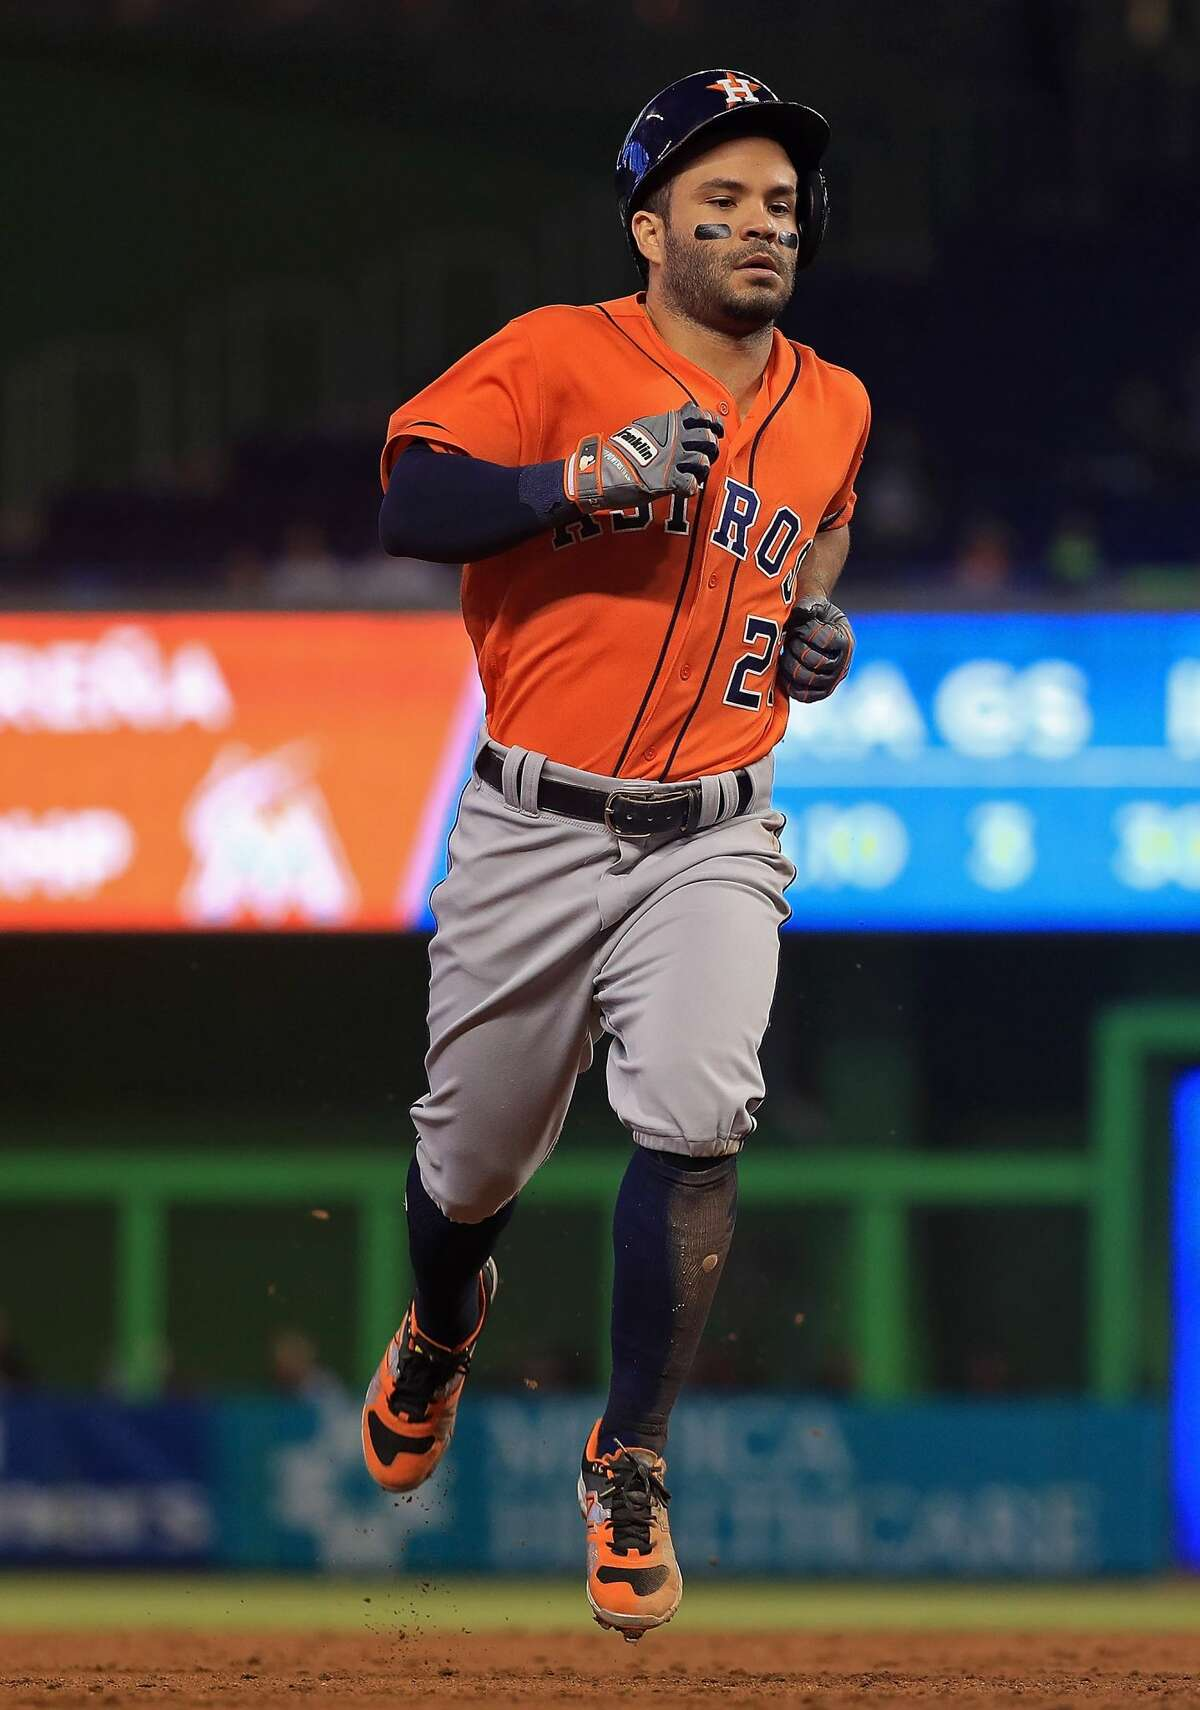 MIAMI, FL - MAY 17: Jose Altuve #27 of the Houston Astros hits a triple in the third inning during a game against the Miami Marlins at Marlins Park on May 17, 2017 in Miami, Florida. (Photo by Mike Ehrmann/Getty Images)